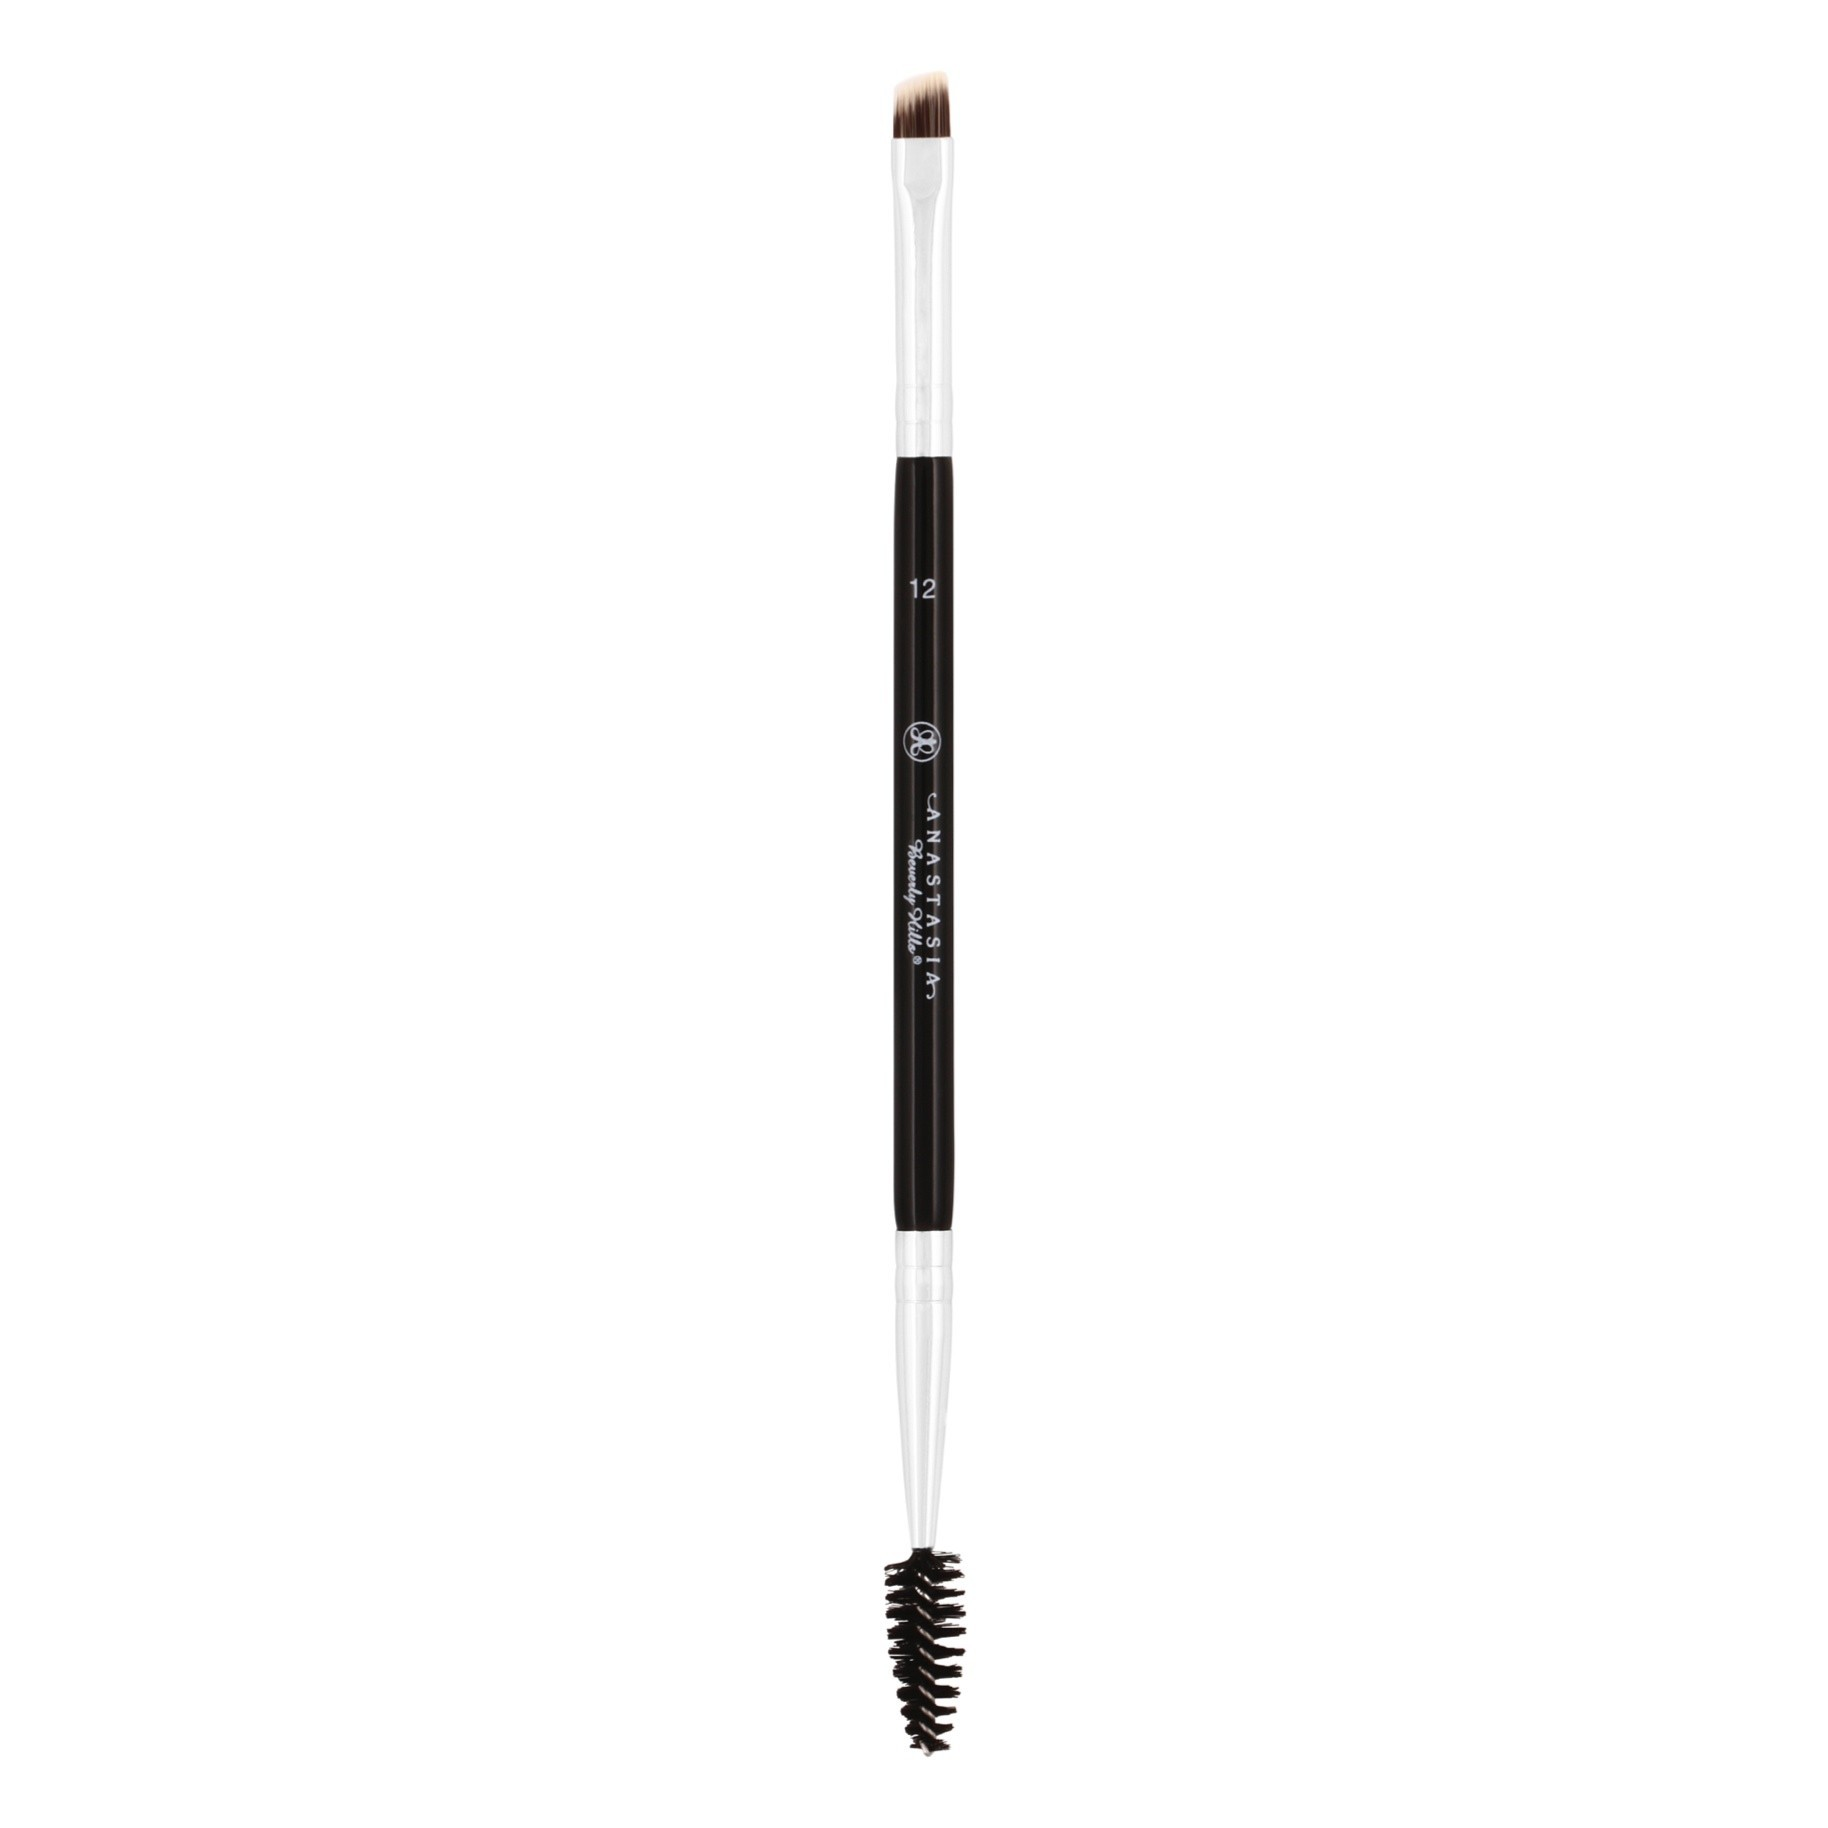 Anastasia Beverly Hills Duo Brush #12 кисть для бровей